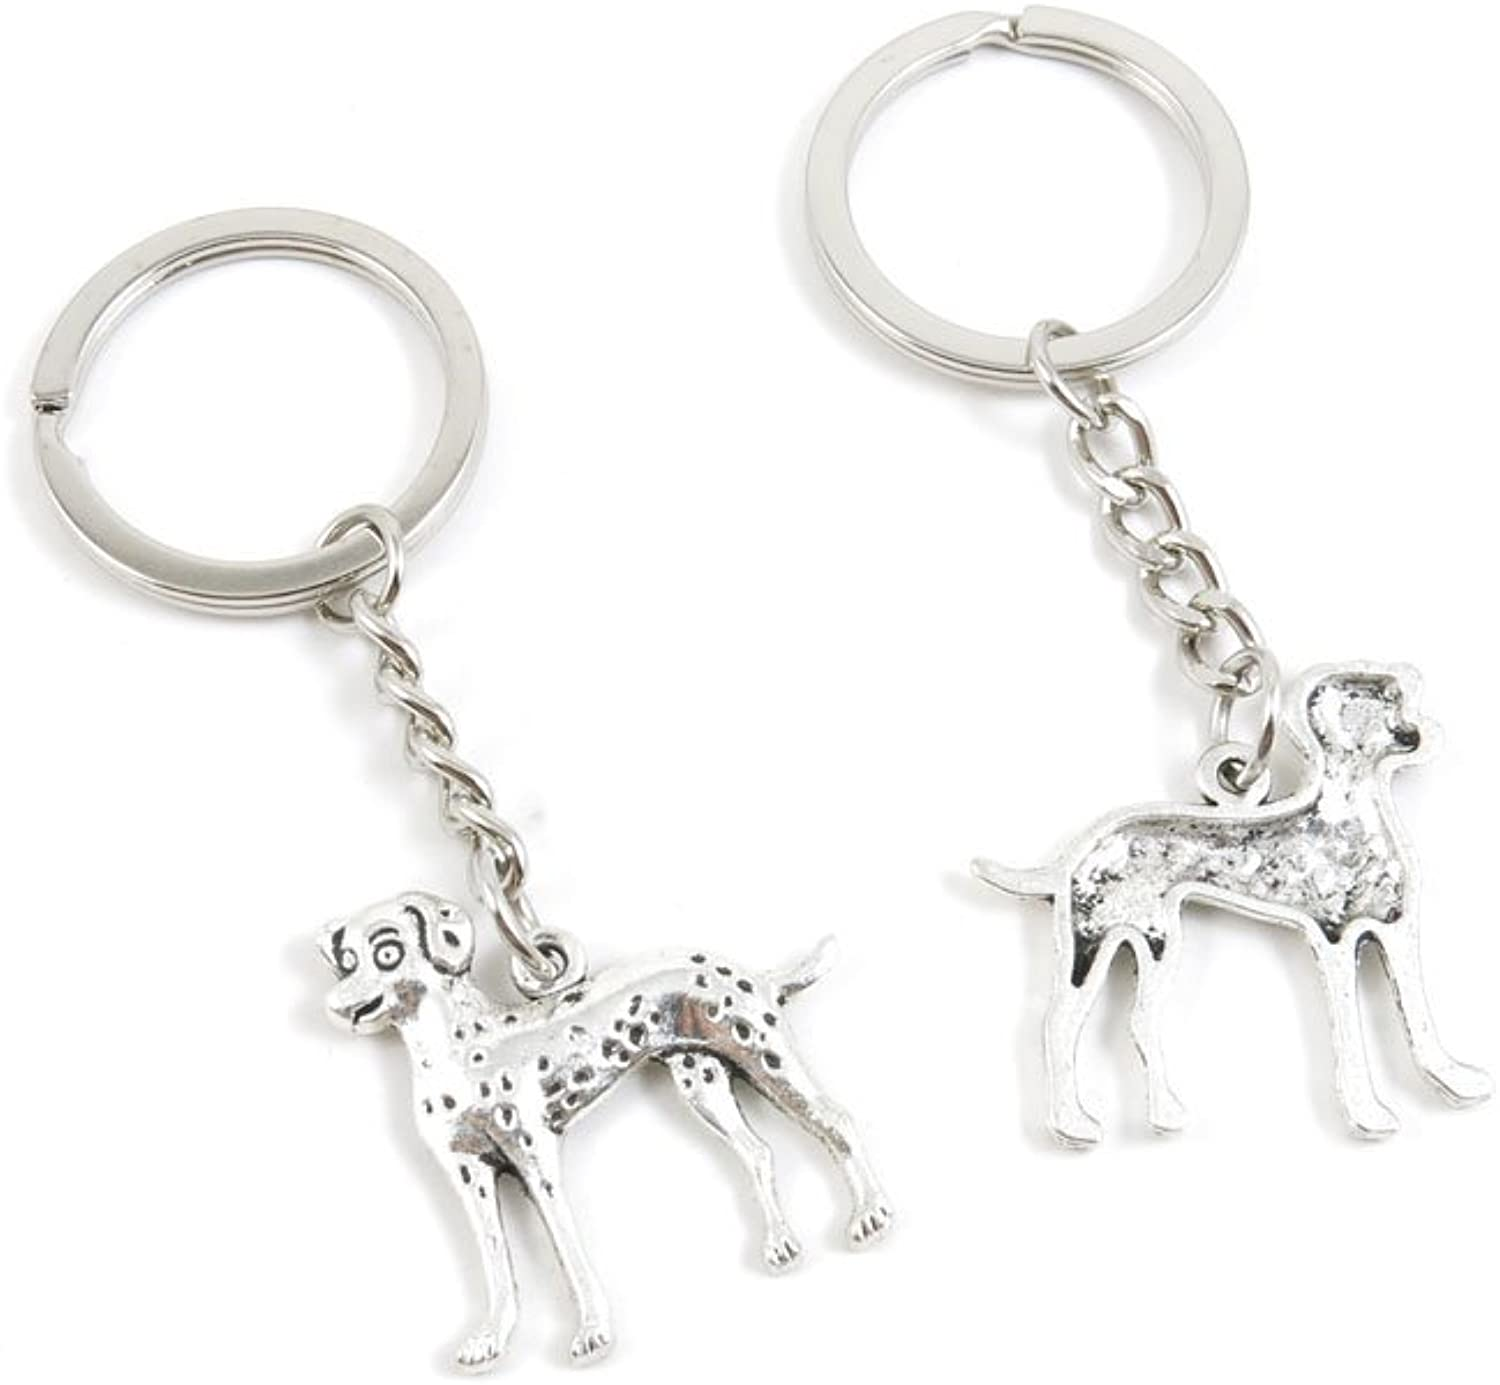 100 Pieces Keychain Keyring Door Car Key Chain Ring Tag Charms Bulk Supply Jewelry Making Clasp Findings A5BG3G Dalmatian